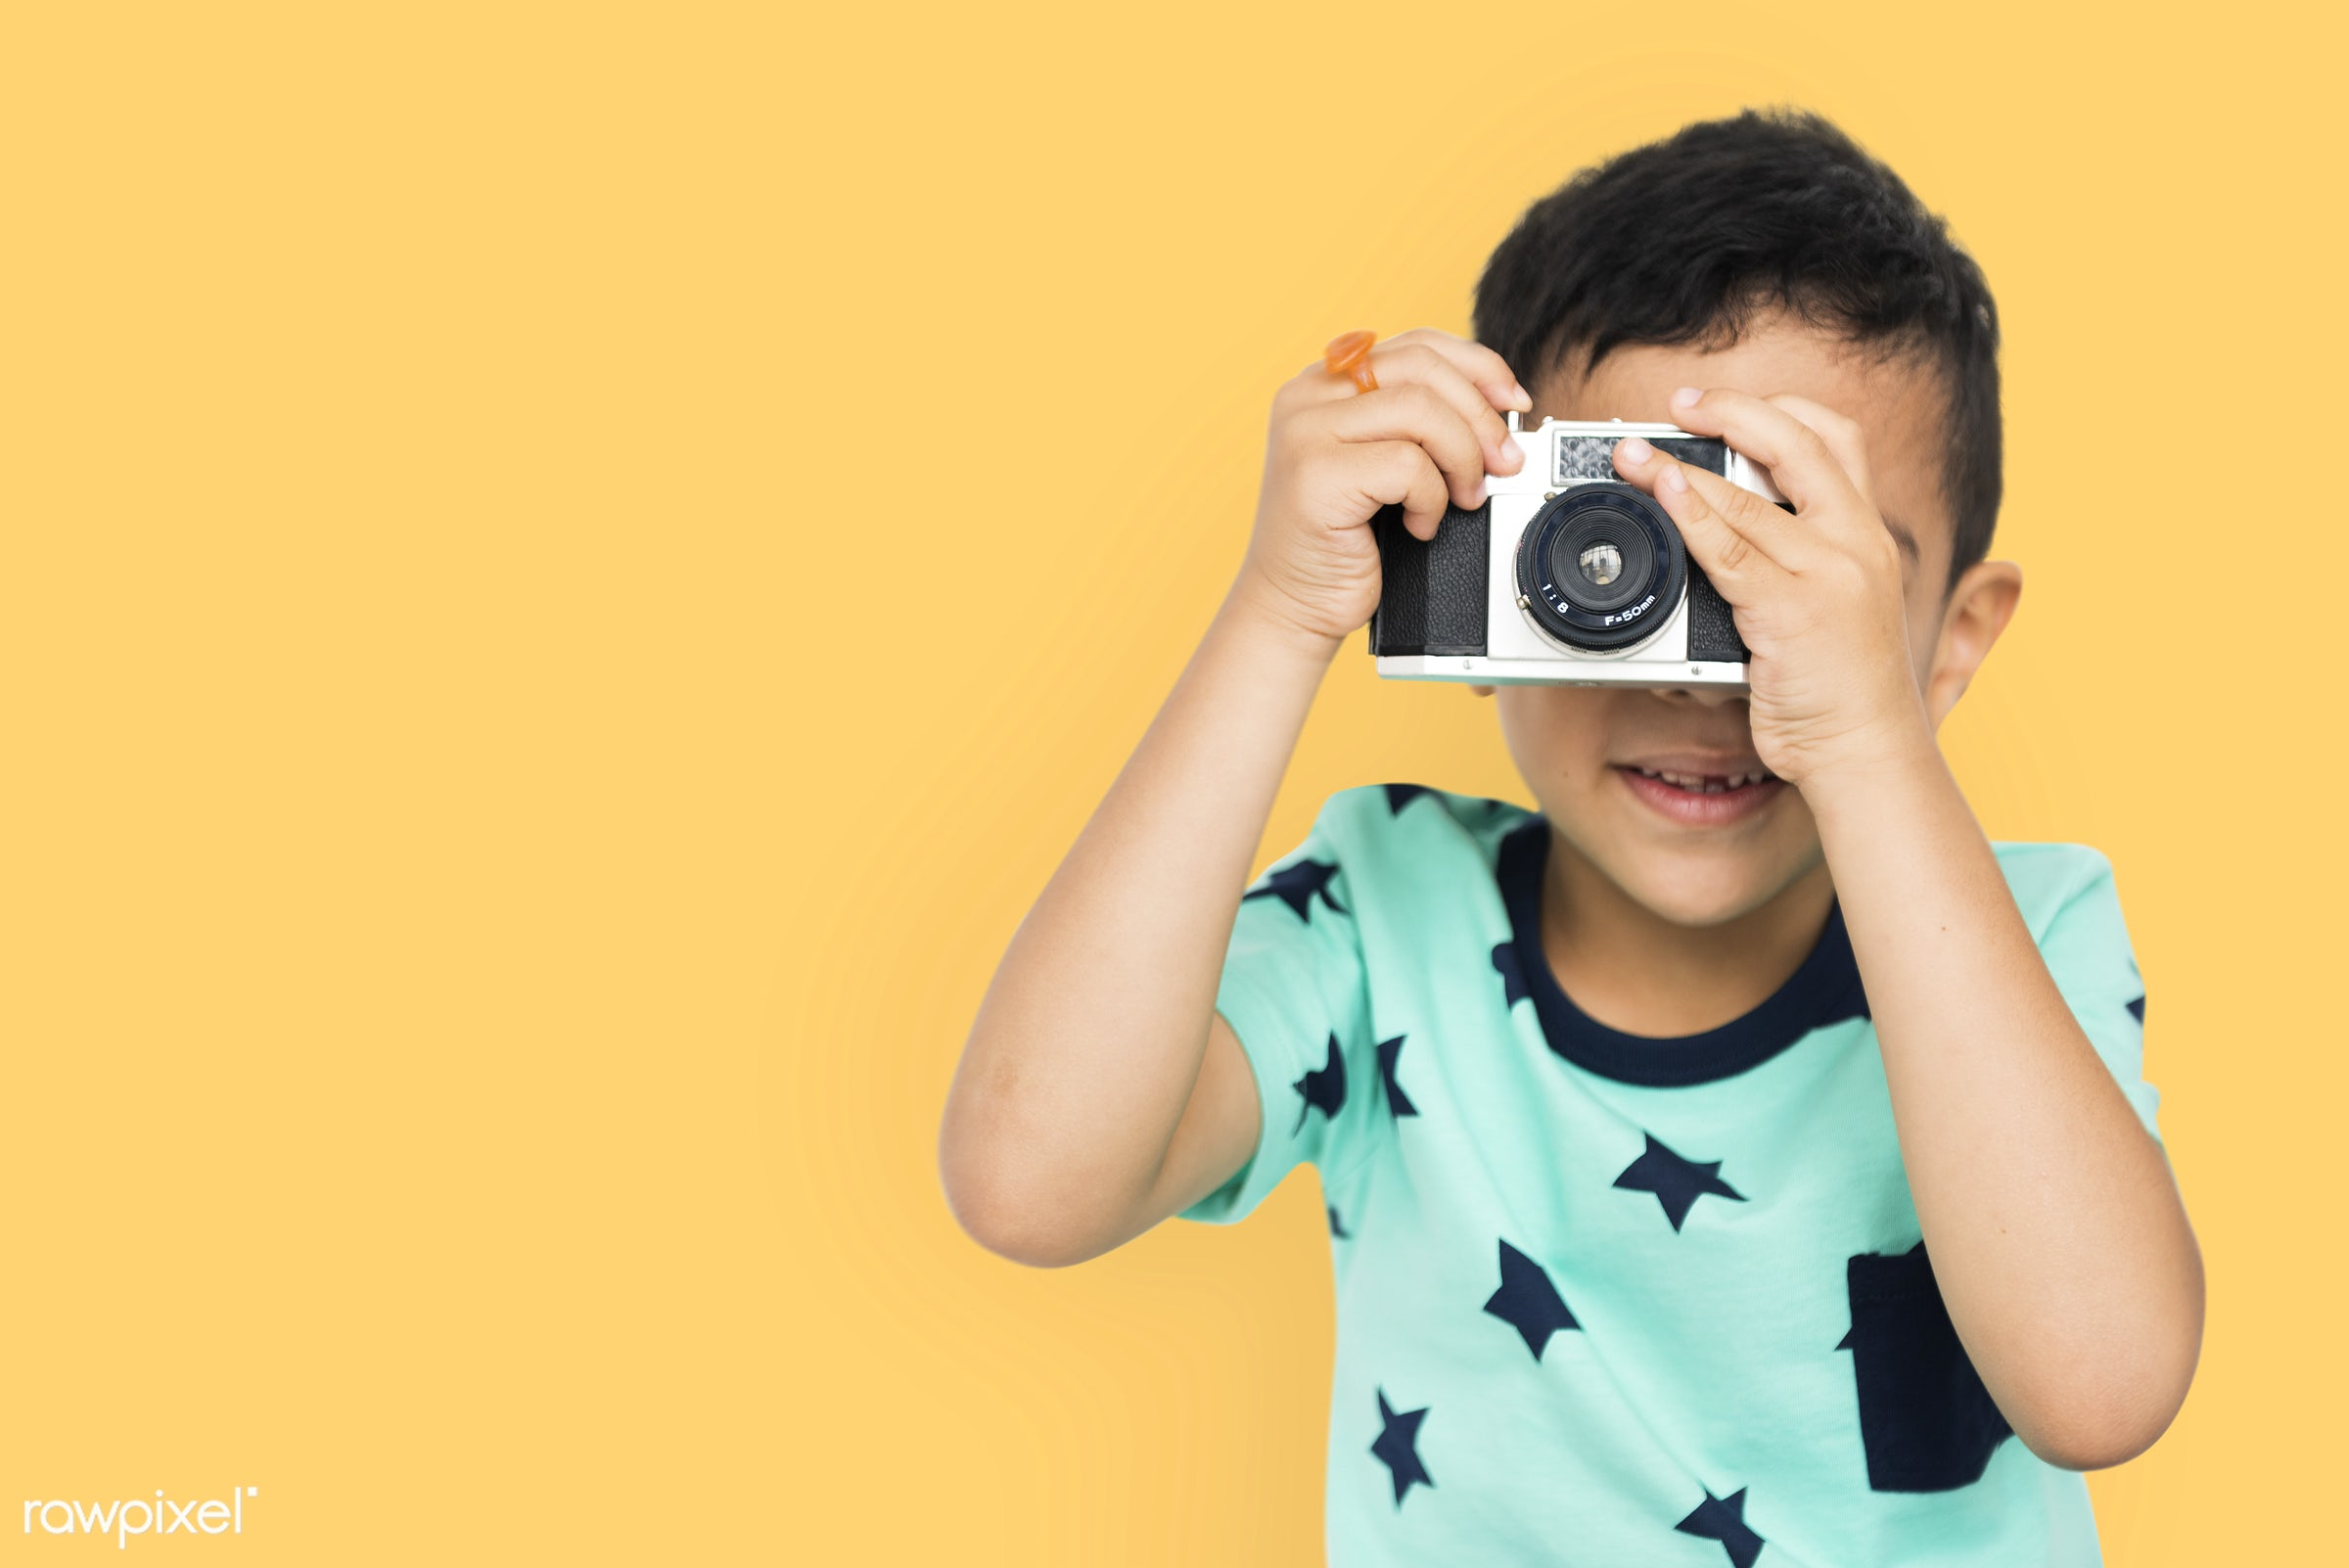 expression, studio, person, joy, little, cute, people, kid, child, joyous, happy, cheerful, isolated, camera, excited, fun,...